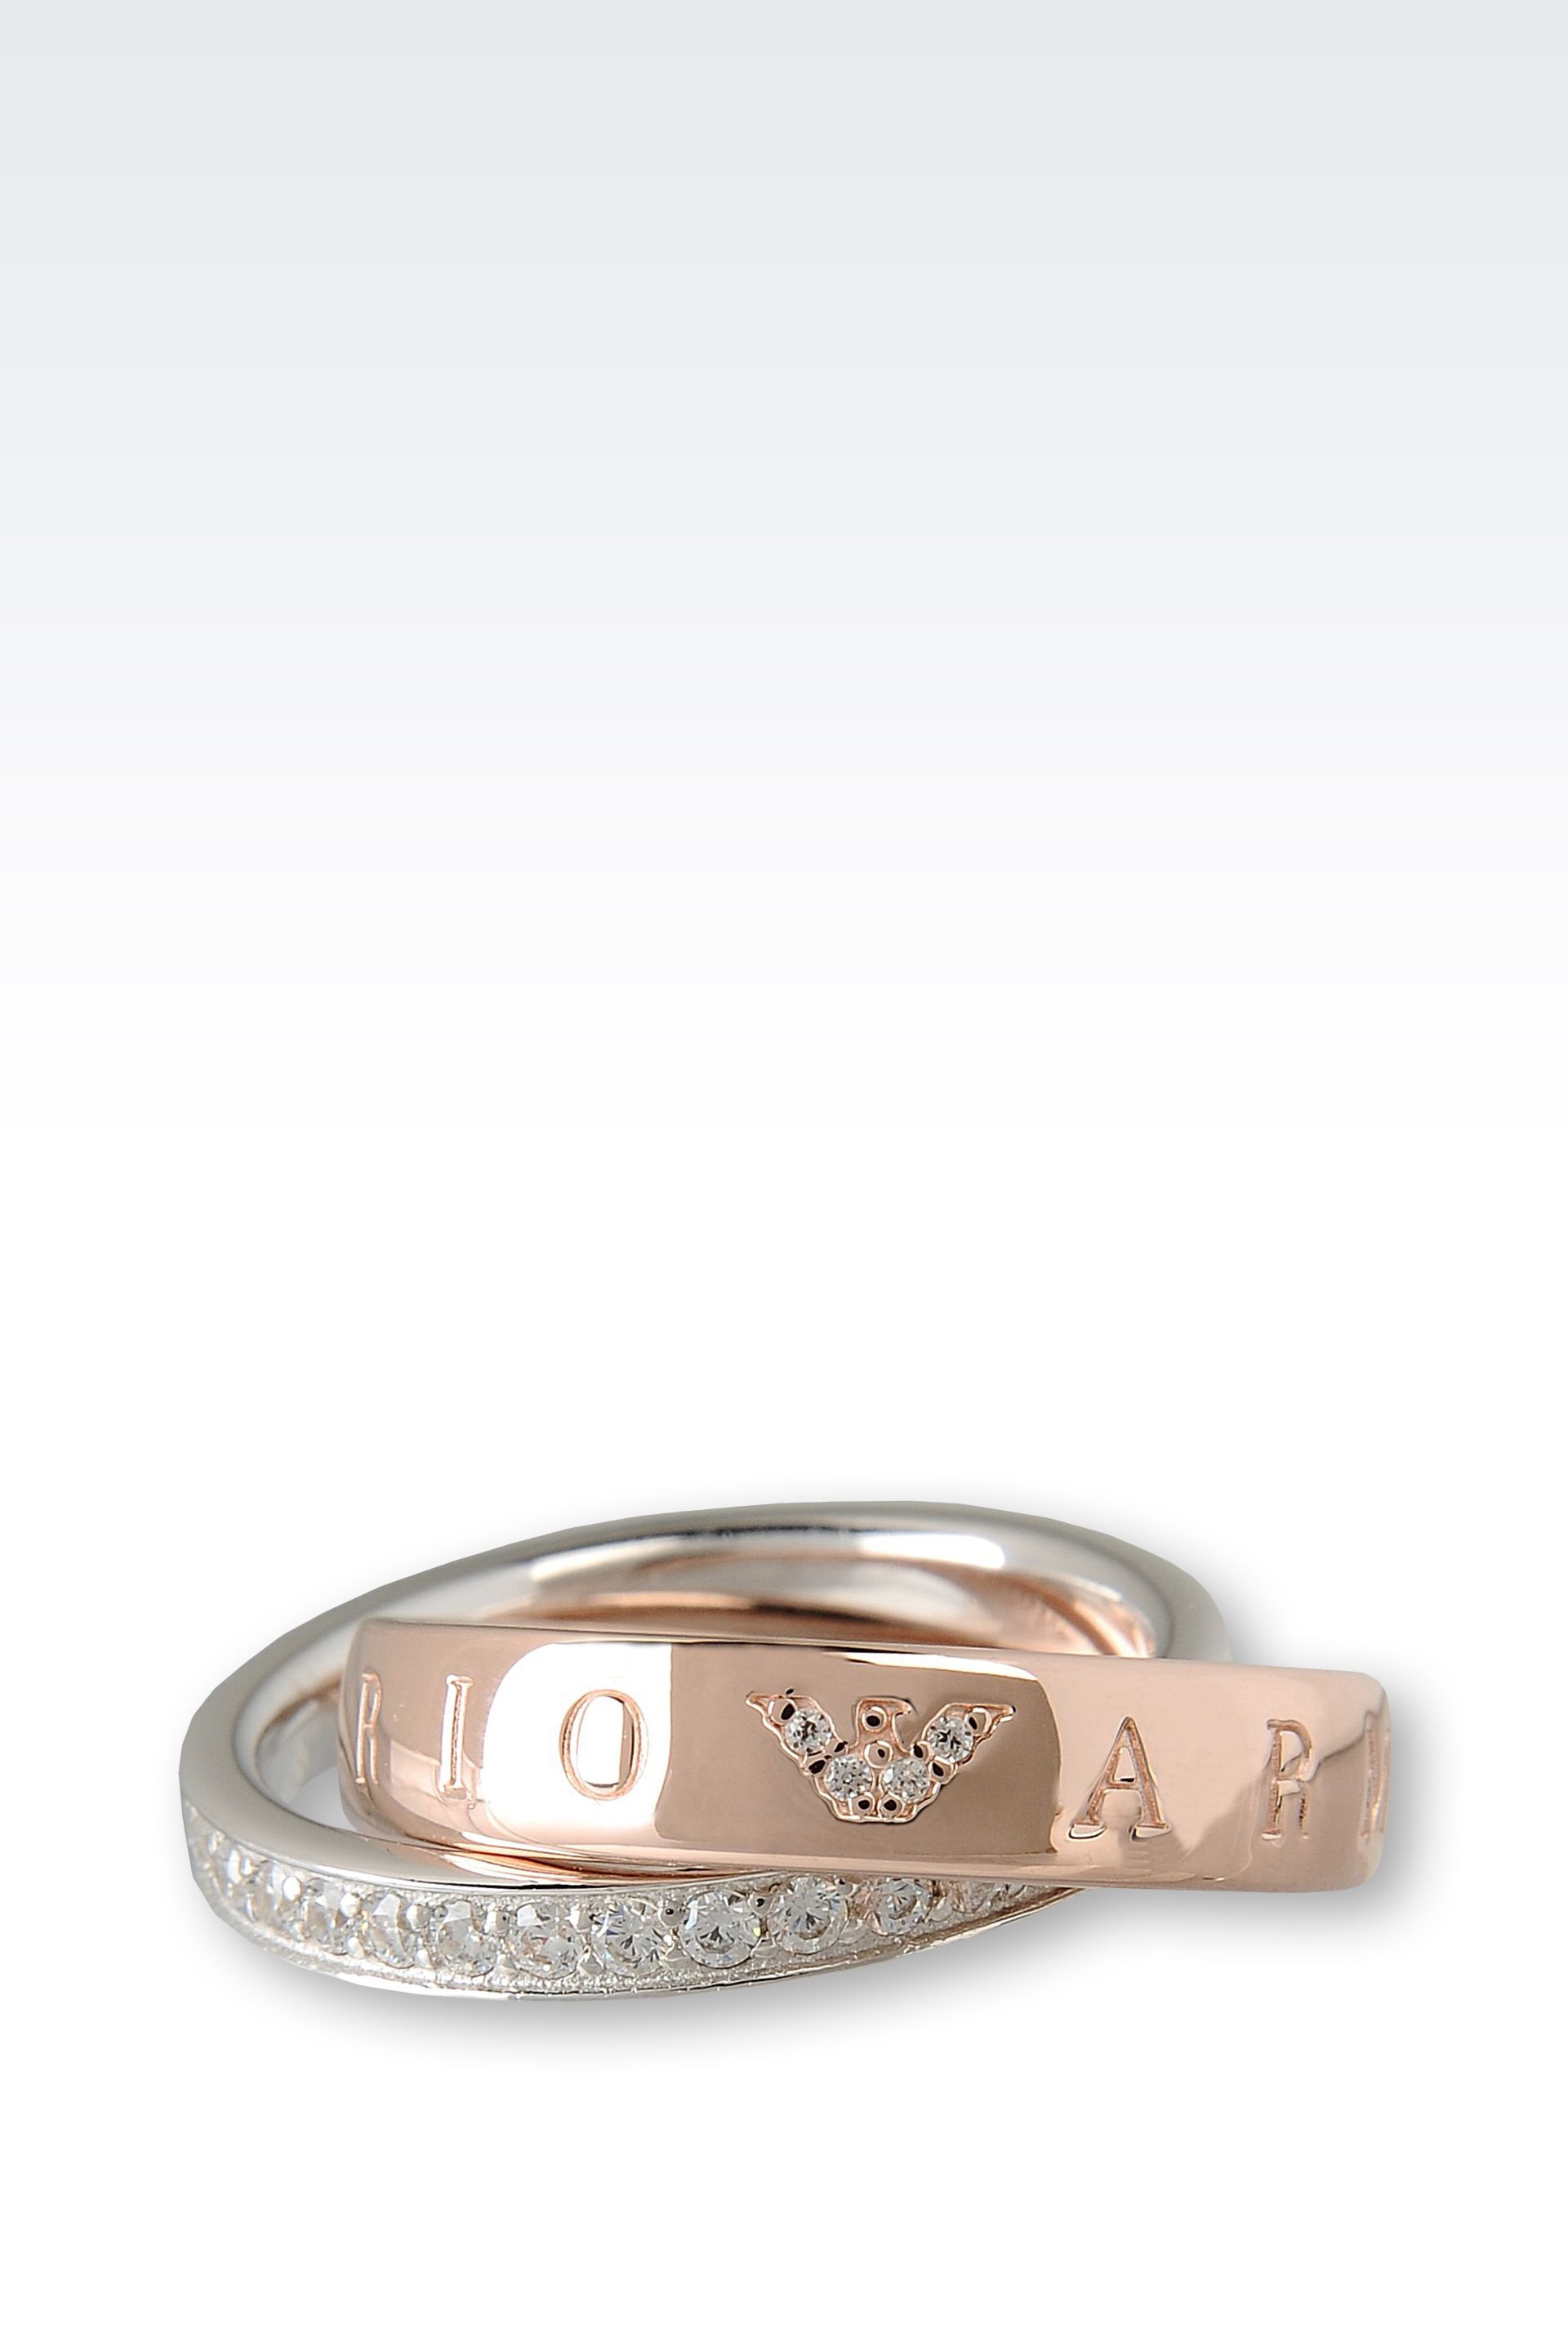 Lyst Emporio Armani Ring in Pink for Men